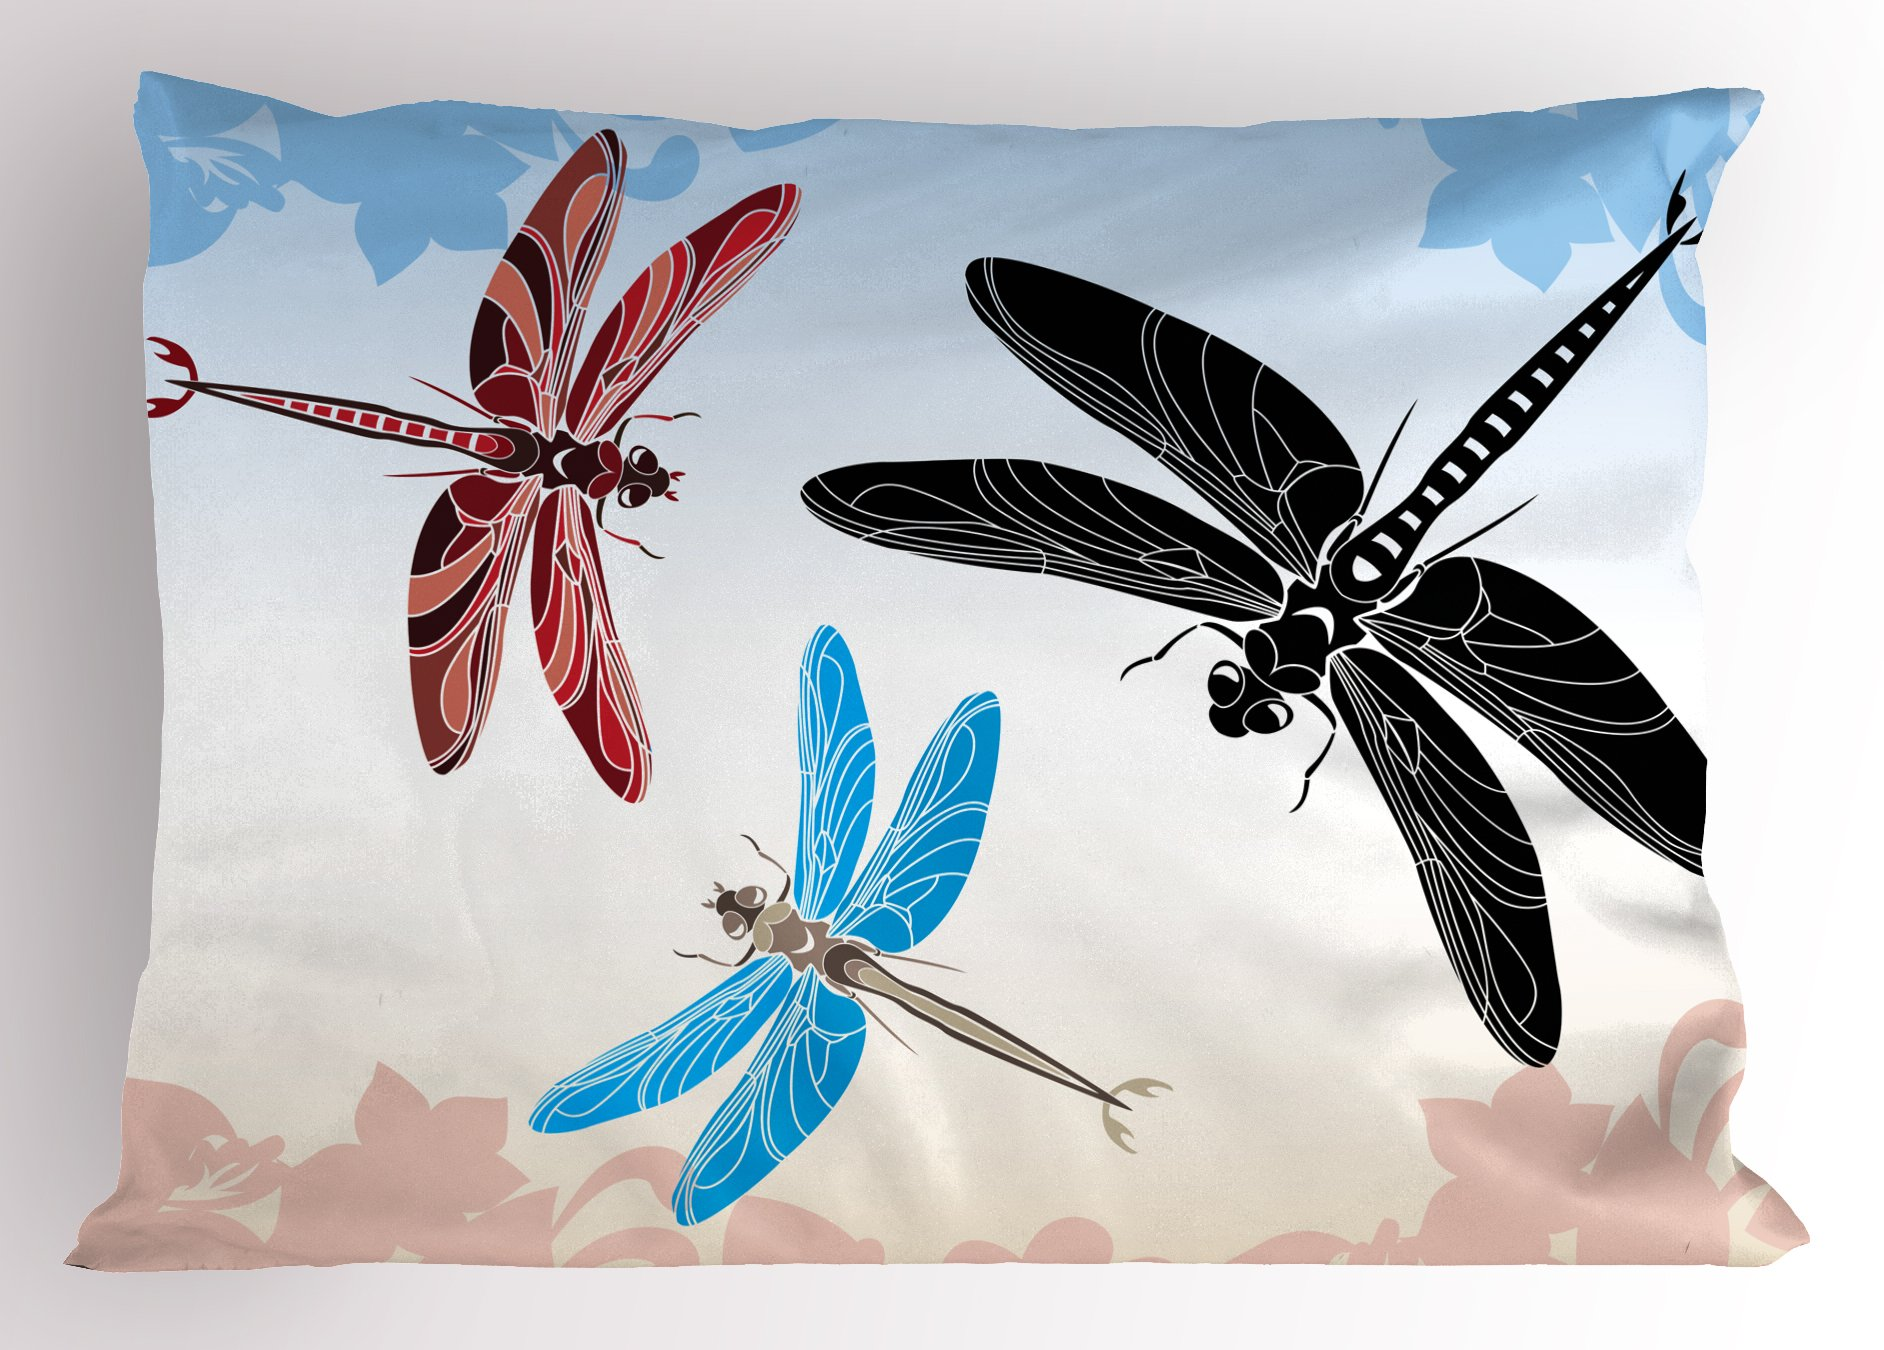 Ambesonne Dragonfly Pillow Sham, Exotic Dragonflies Flying in Cloud Sky Animal Wing Nature Illustration, Decorative Standard King Size Printed Pillowcase, 36 X 20 inches, Black Blue Light Pink